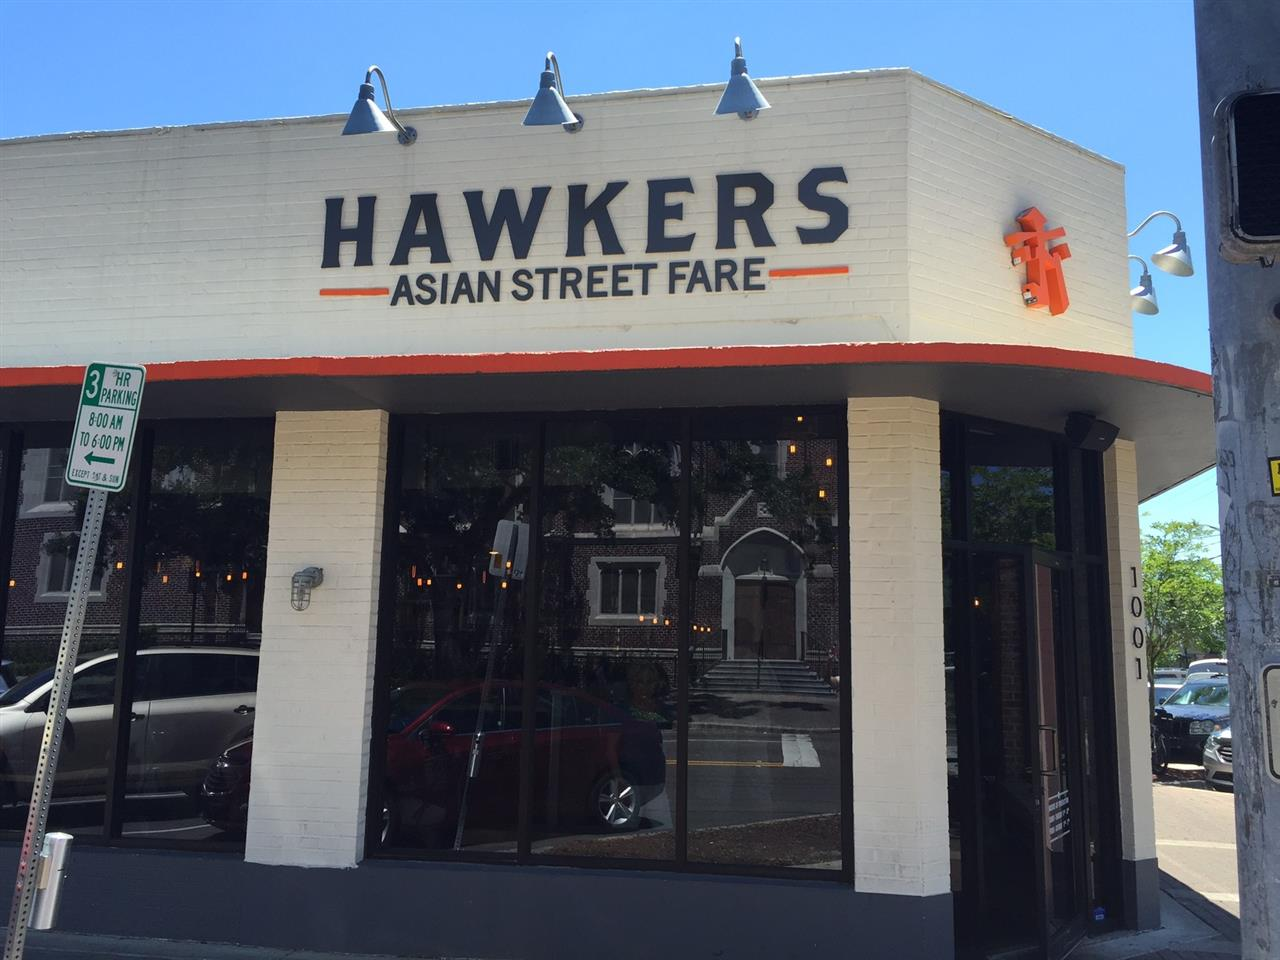 #Jacksonville, FL #5 points #Hawkers #city west